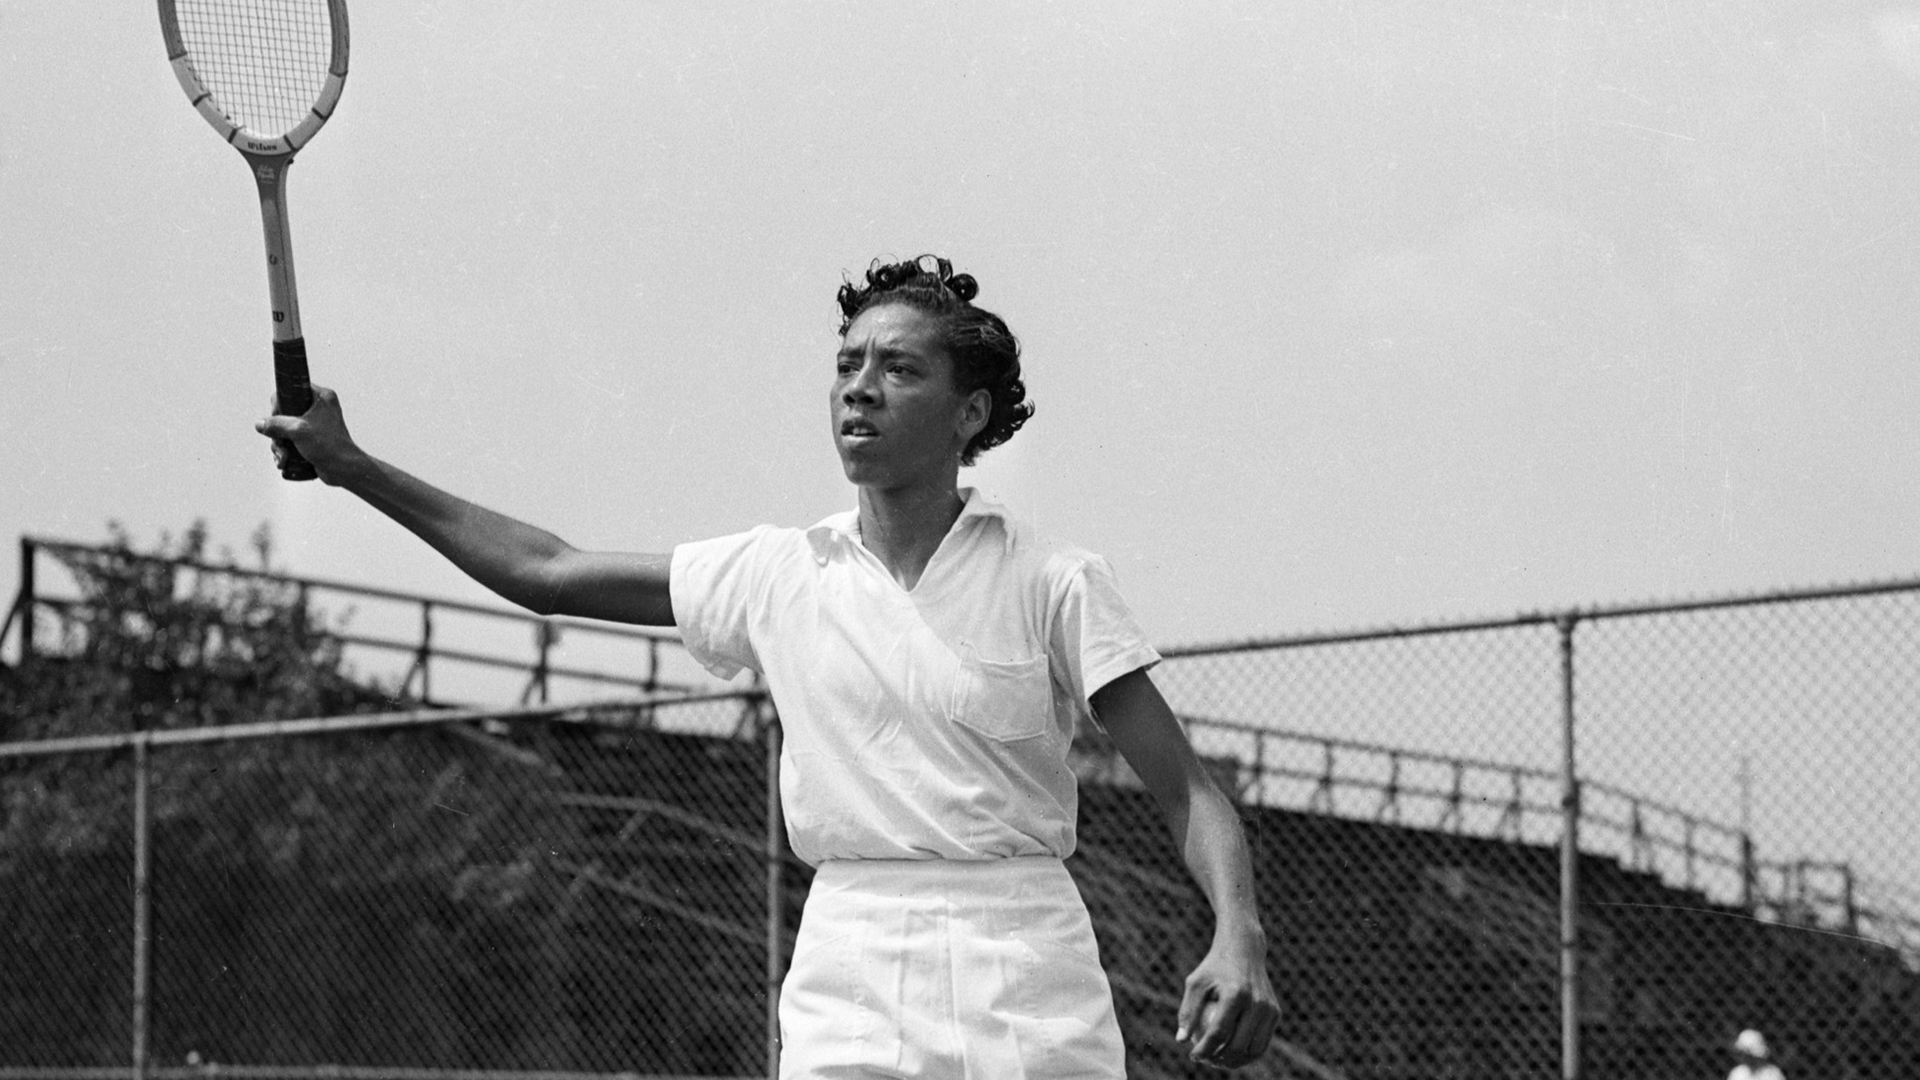 Tennis Today: A statue for Althea Gibson, billboards for Serena Williams  and advice for Andy Murray